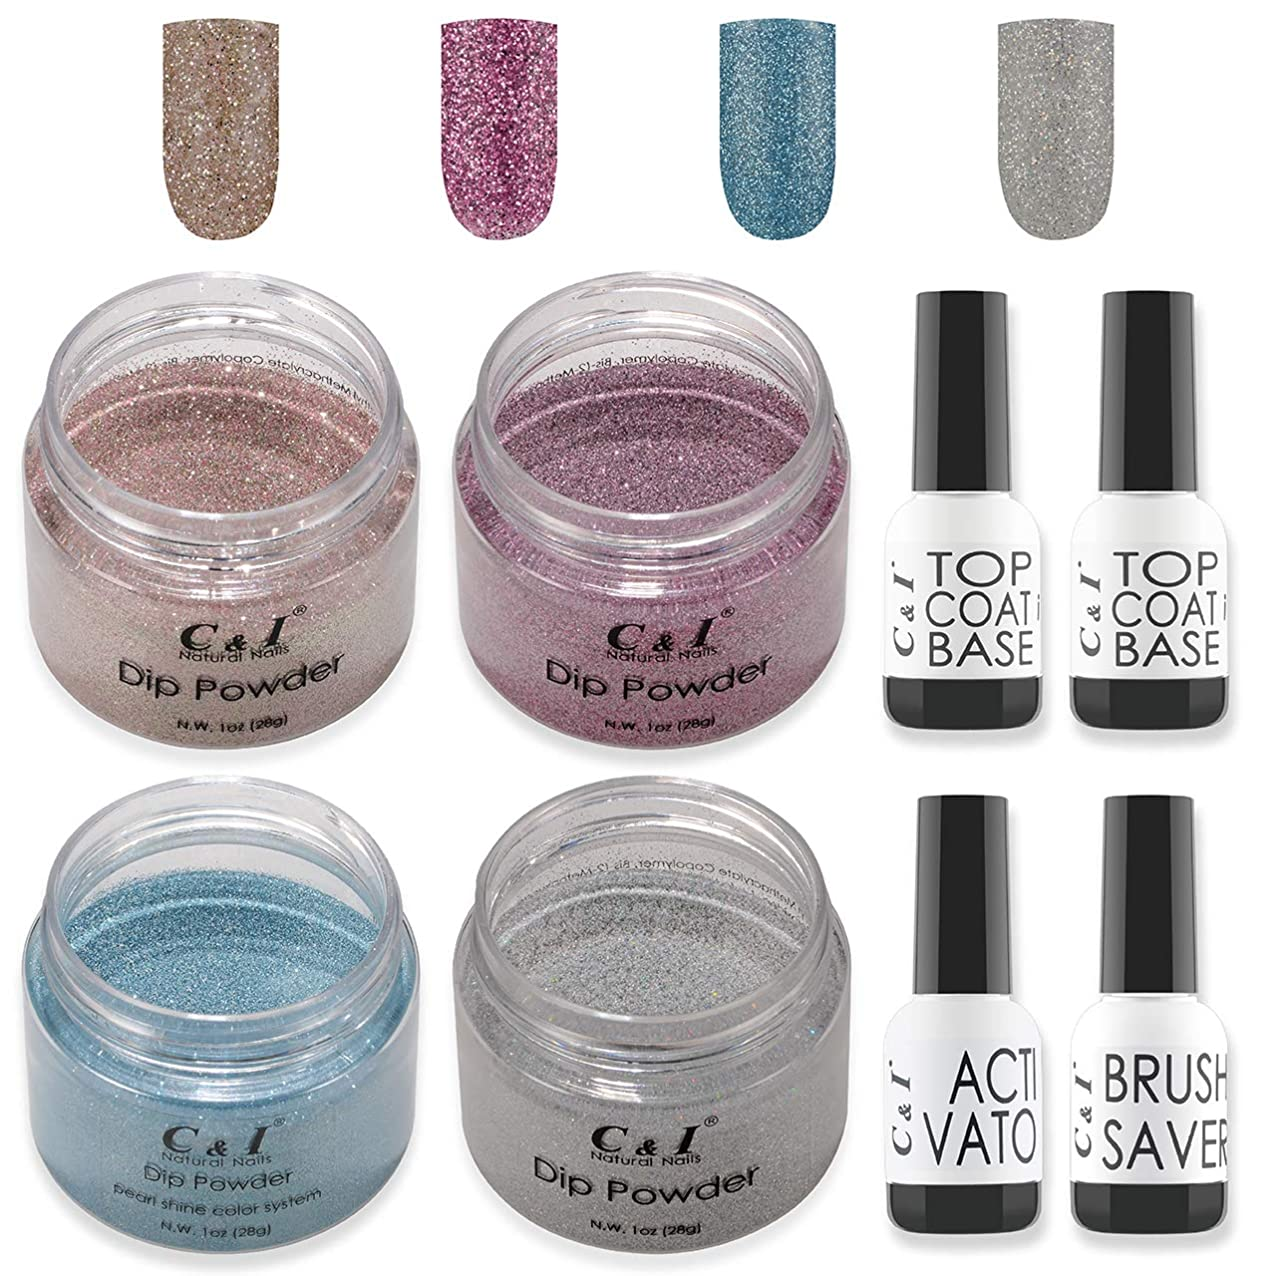 ラベルボードC&I Dip Powder Nail Colors & Liquids Set, 4 colors and 4 liquids, glittering nail powder, N.W. 28 g * 4 pcs & 15 ml * 4 pcs